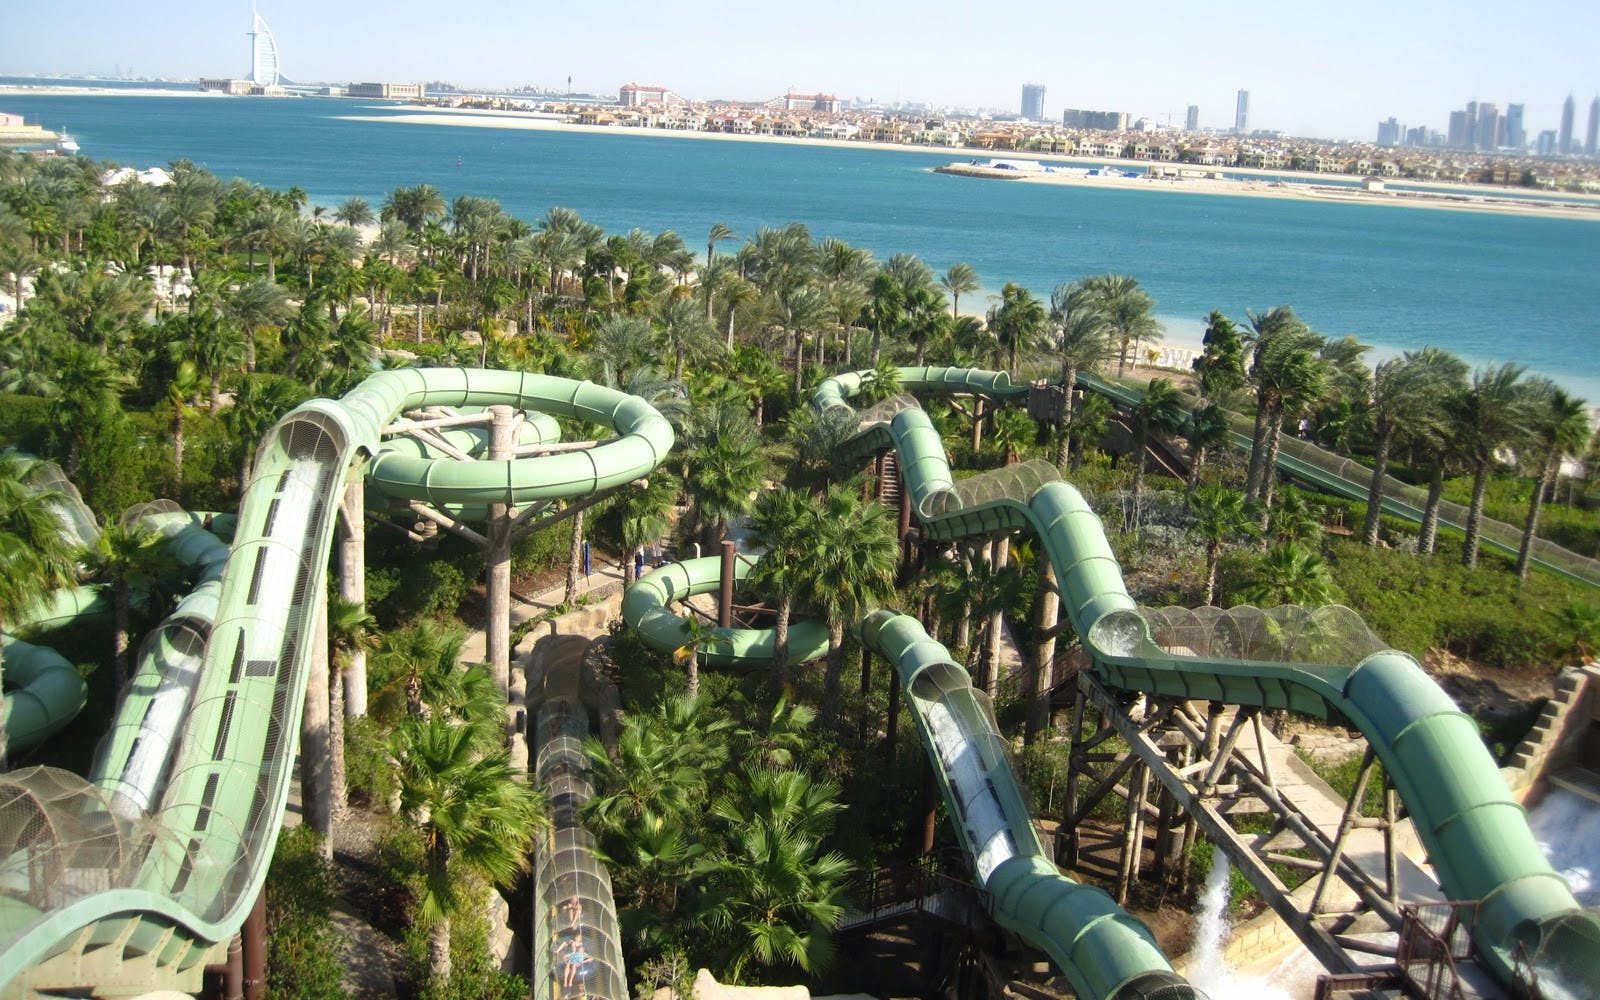 aquaventure waterpark & fountain lake ride combo-4